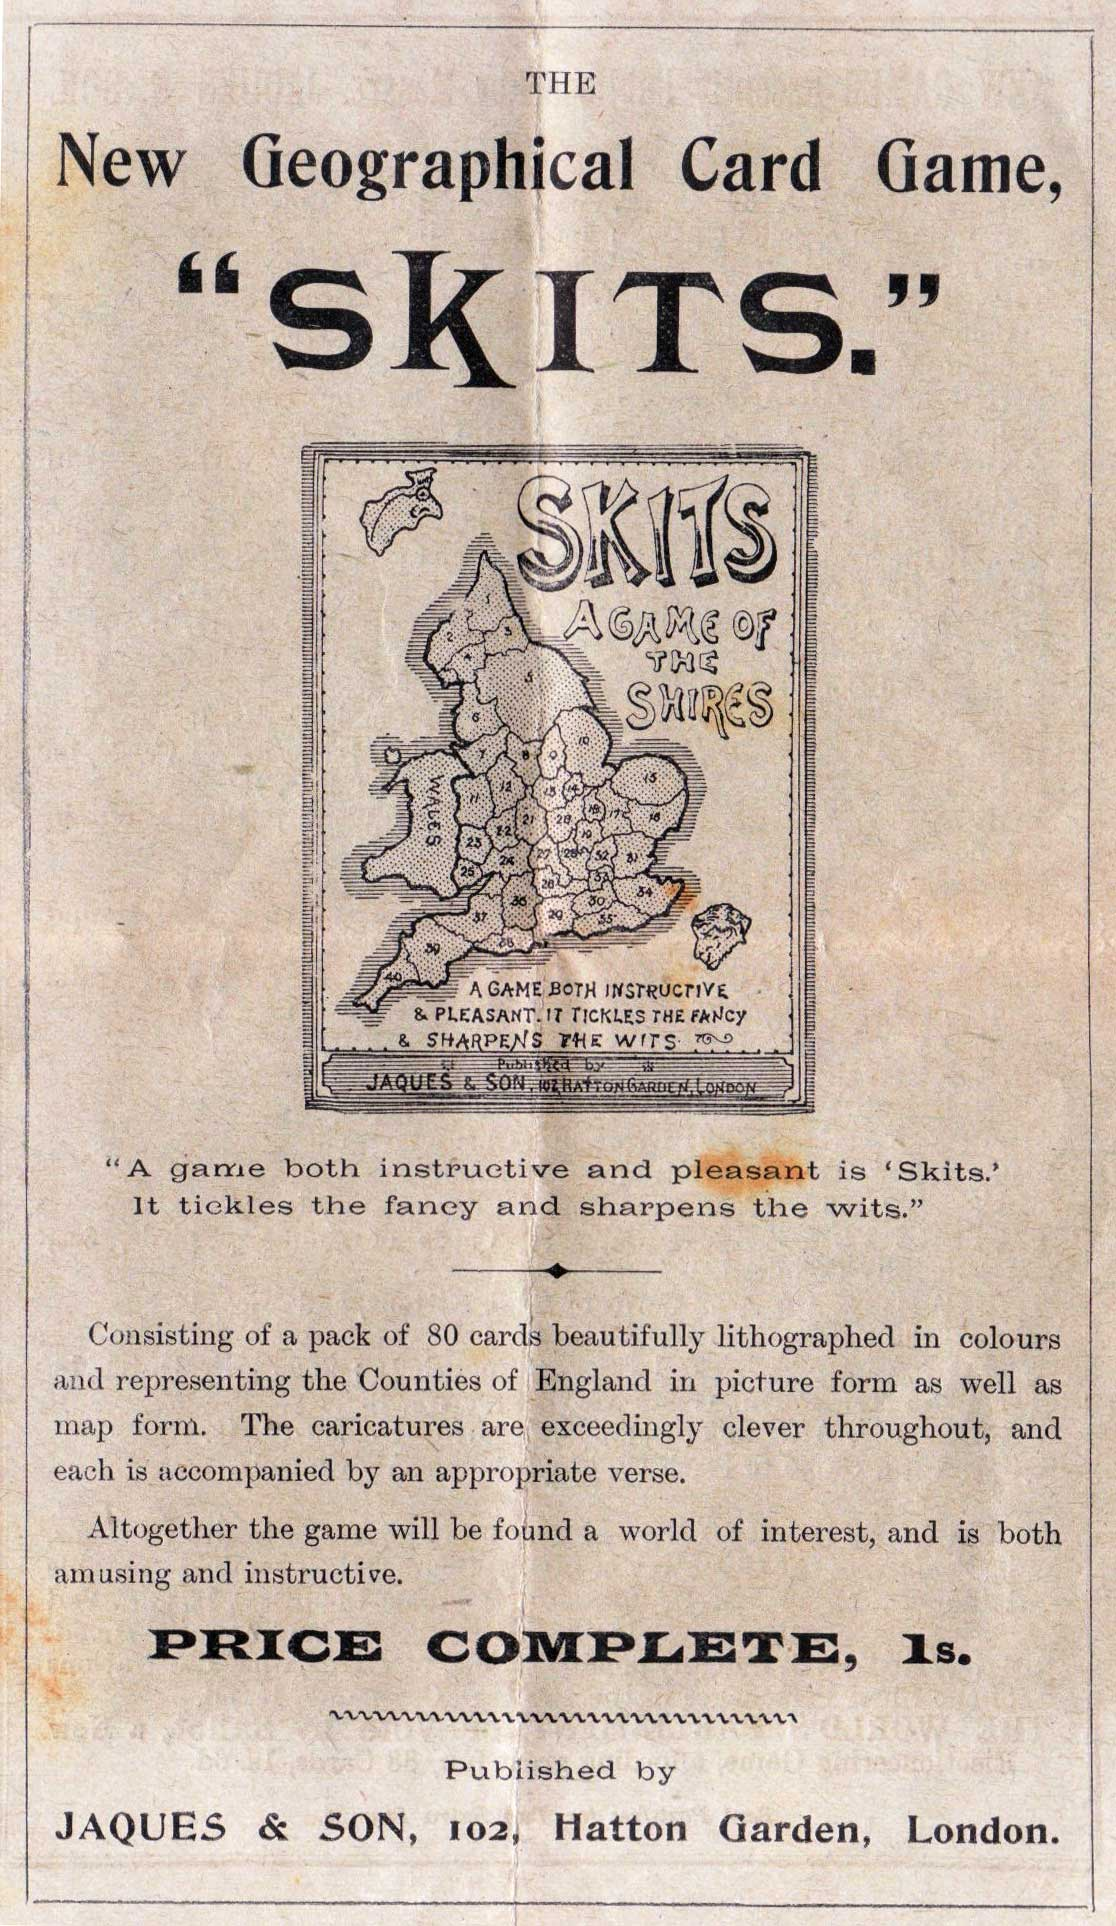 Skits leazflet from inside National Gallery game, Jaques & Son, c.1900